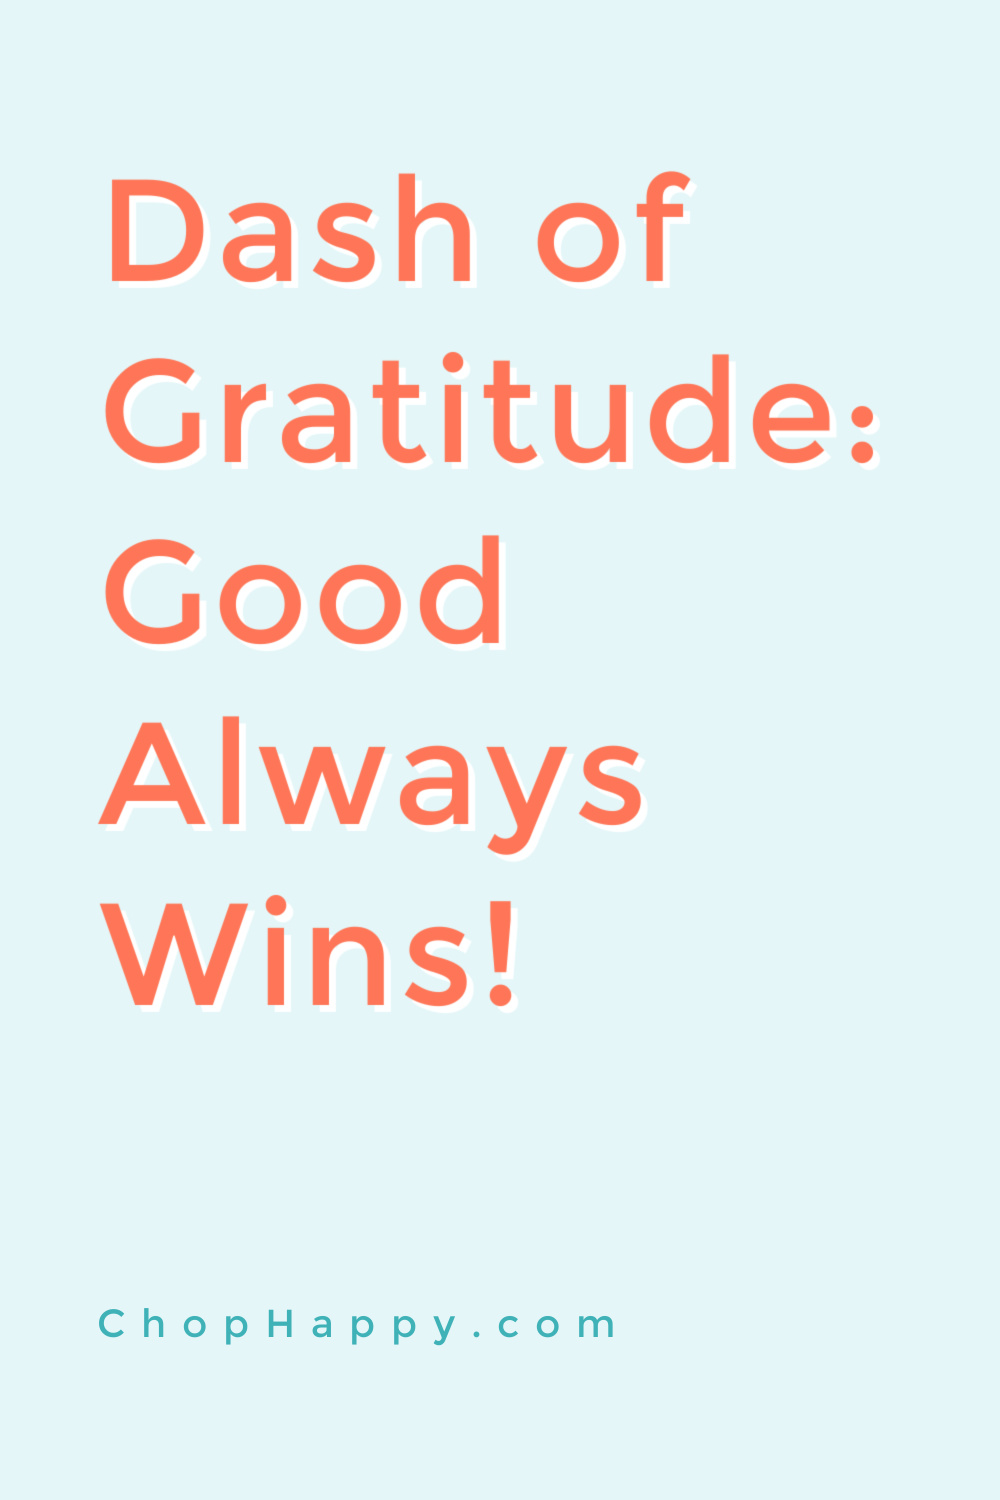 Dash of Gratitude: Good Always Wins! Inspiirational quotes to help you live your dreams. Dream big, live in the now, and believe in yourself. Happy Today! www.ChopHappy.com #gratitude #motivationalvideos